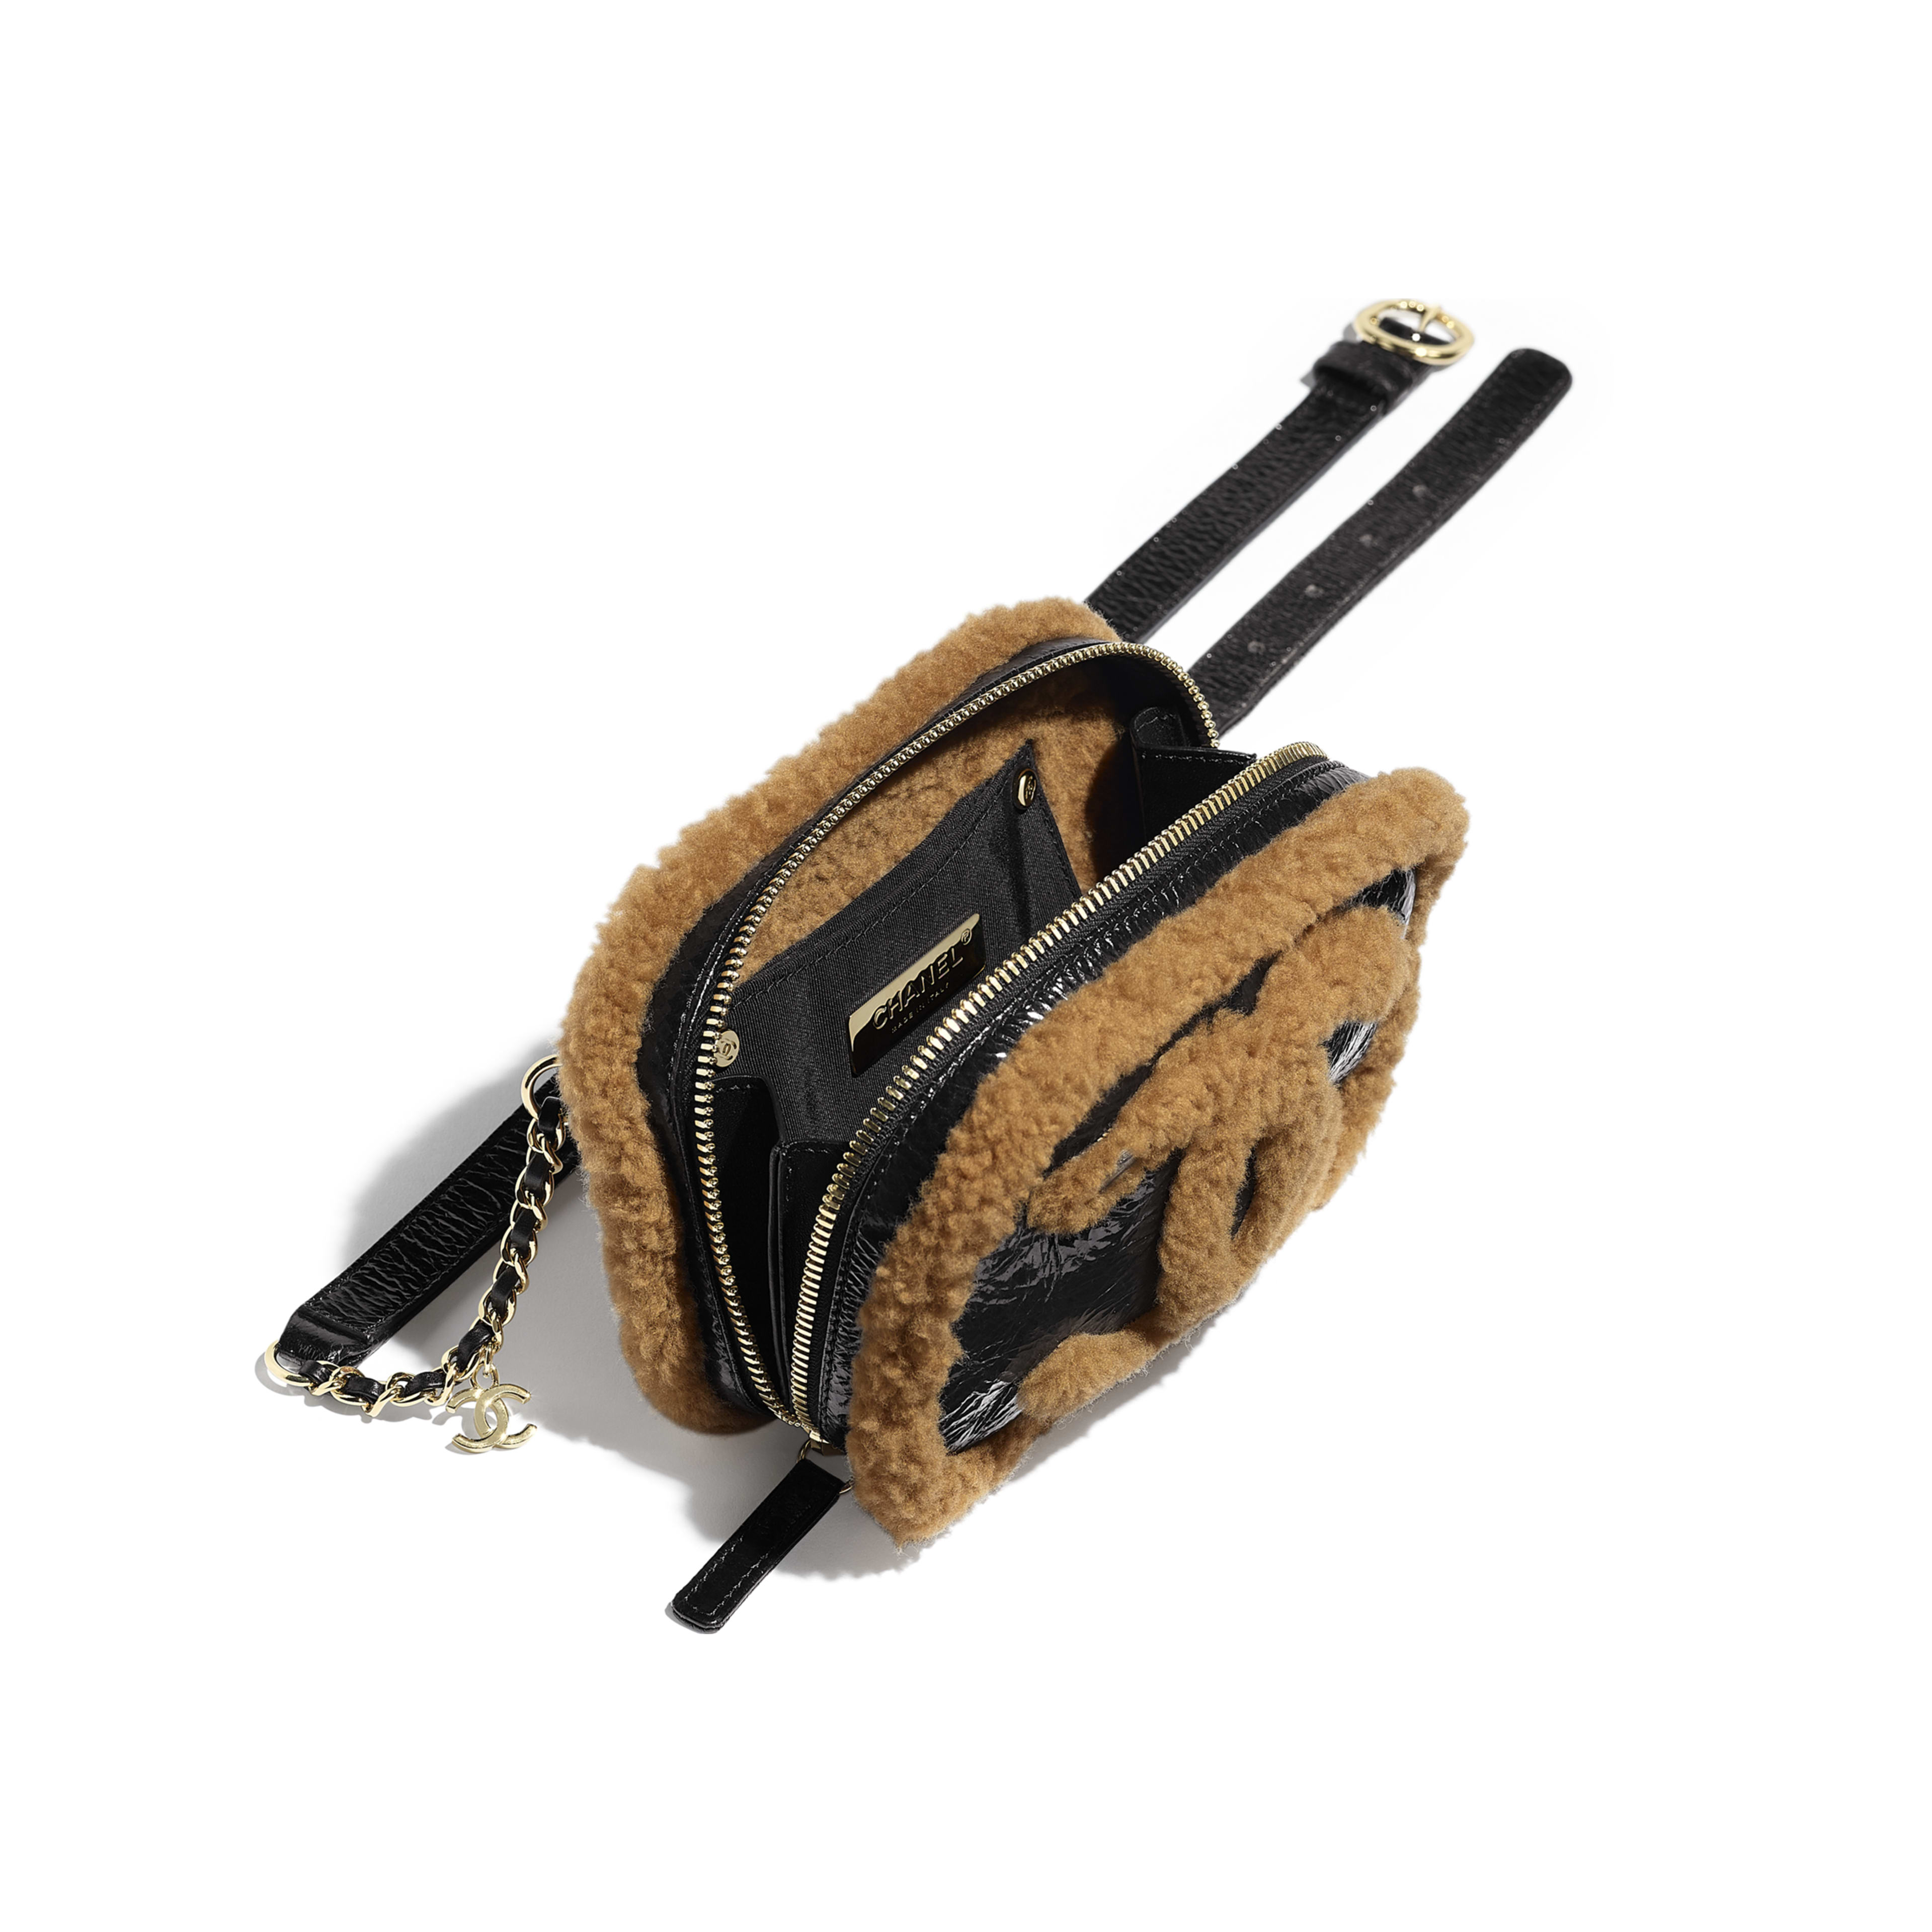 Waist Bag - Black & Brown - Shiny Crumpled Sheepskin, Shearling Sheepskin & Gold-Tone Metal - Other view - see full sized version